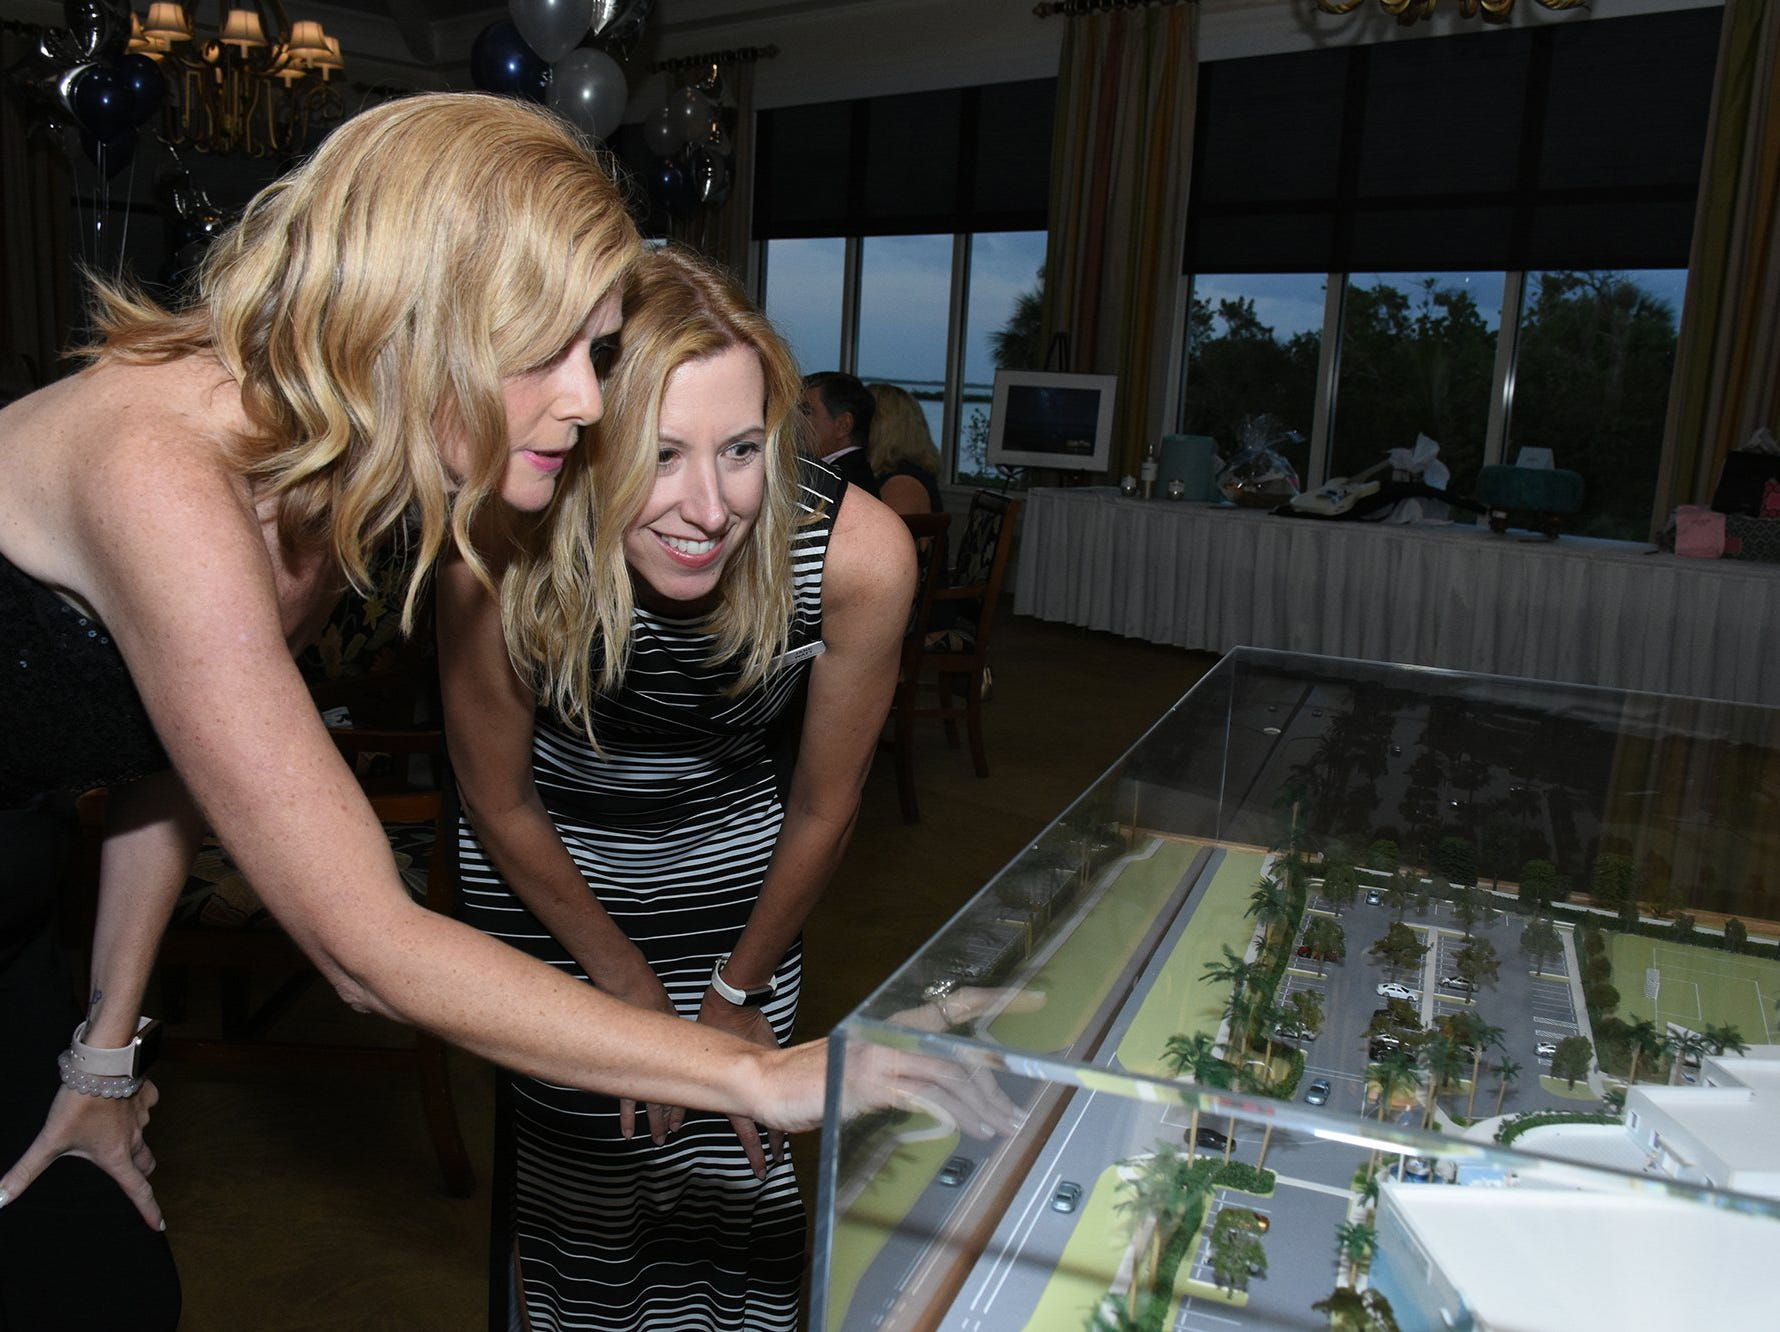 Melissa Scott, left, and Jane Watt inspect the newly unveiled architect's model. Marco Island Academy held 'Cheers for Champions,' a benefit dinner to raise funds for the school's athletic programs, Saturday evening at Hideaway Beach Club.